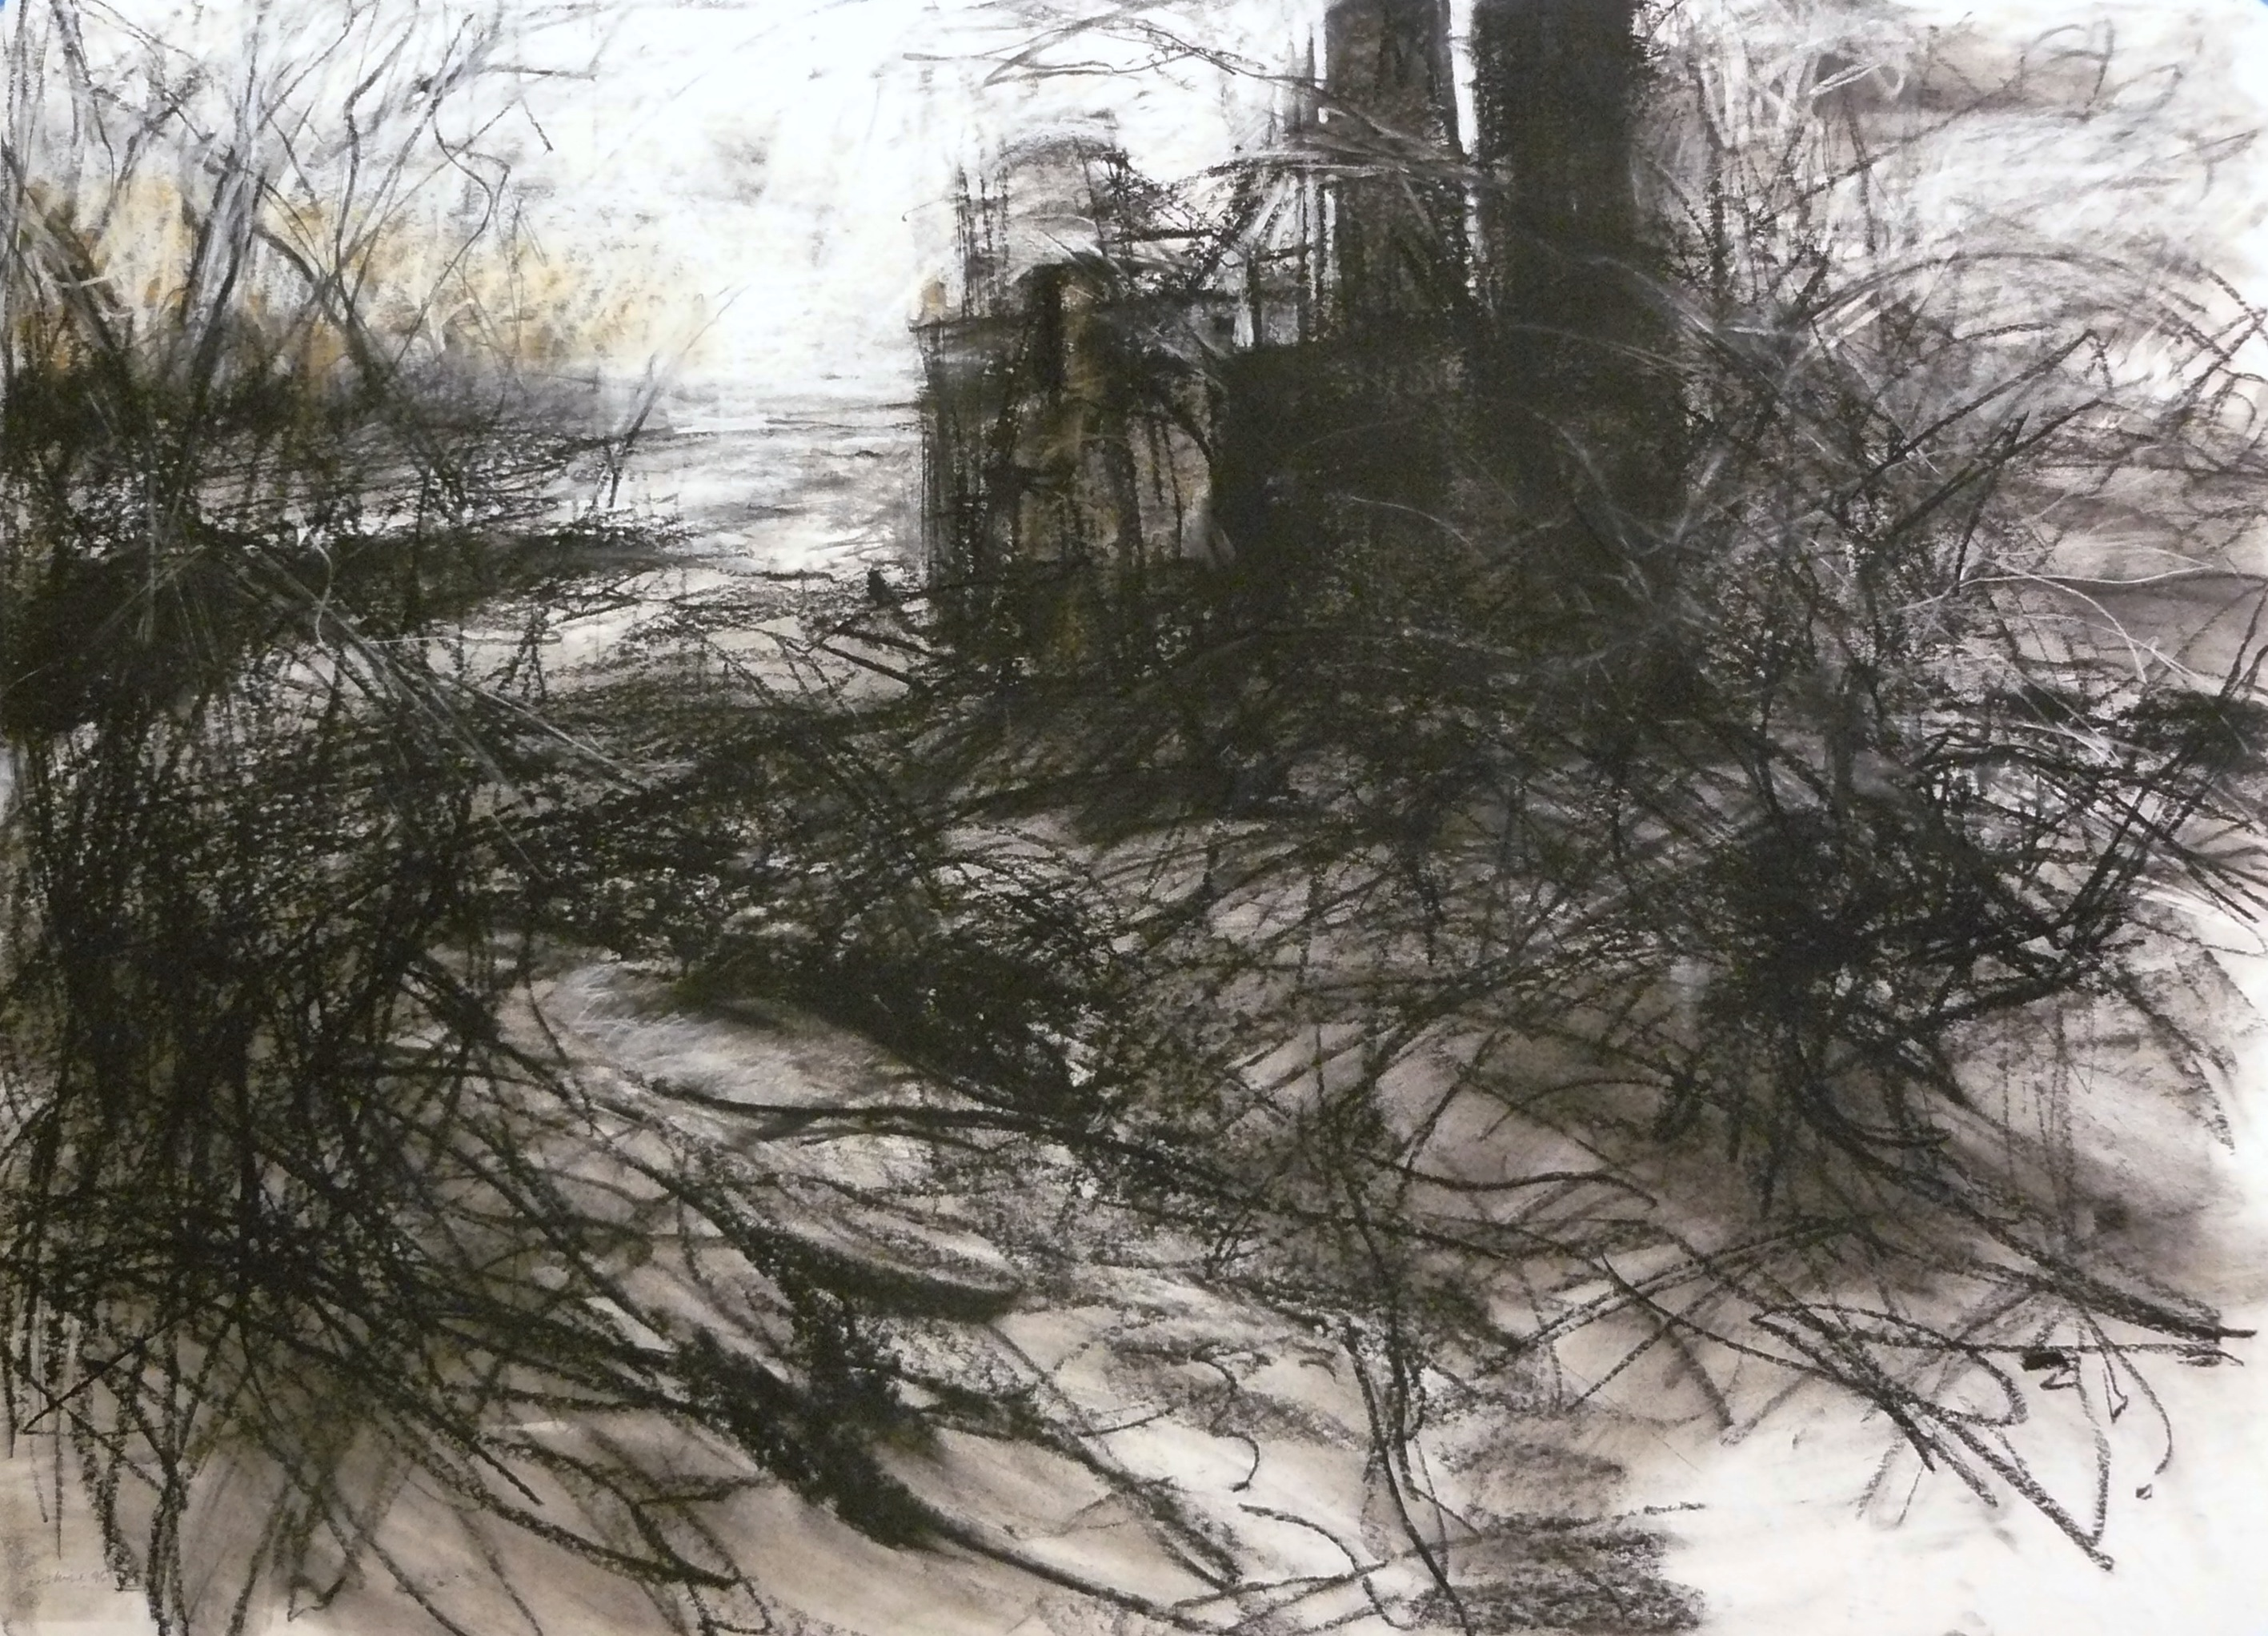 charcoal drawing of industrial site near river